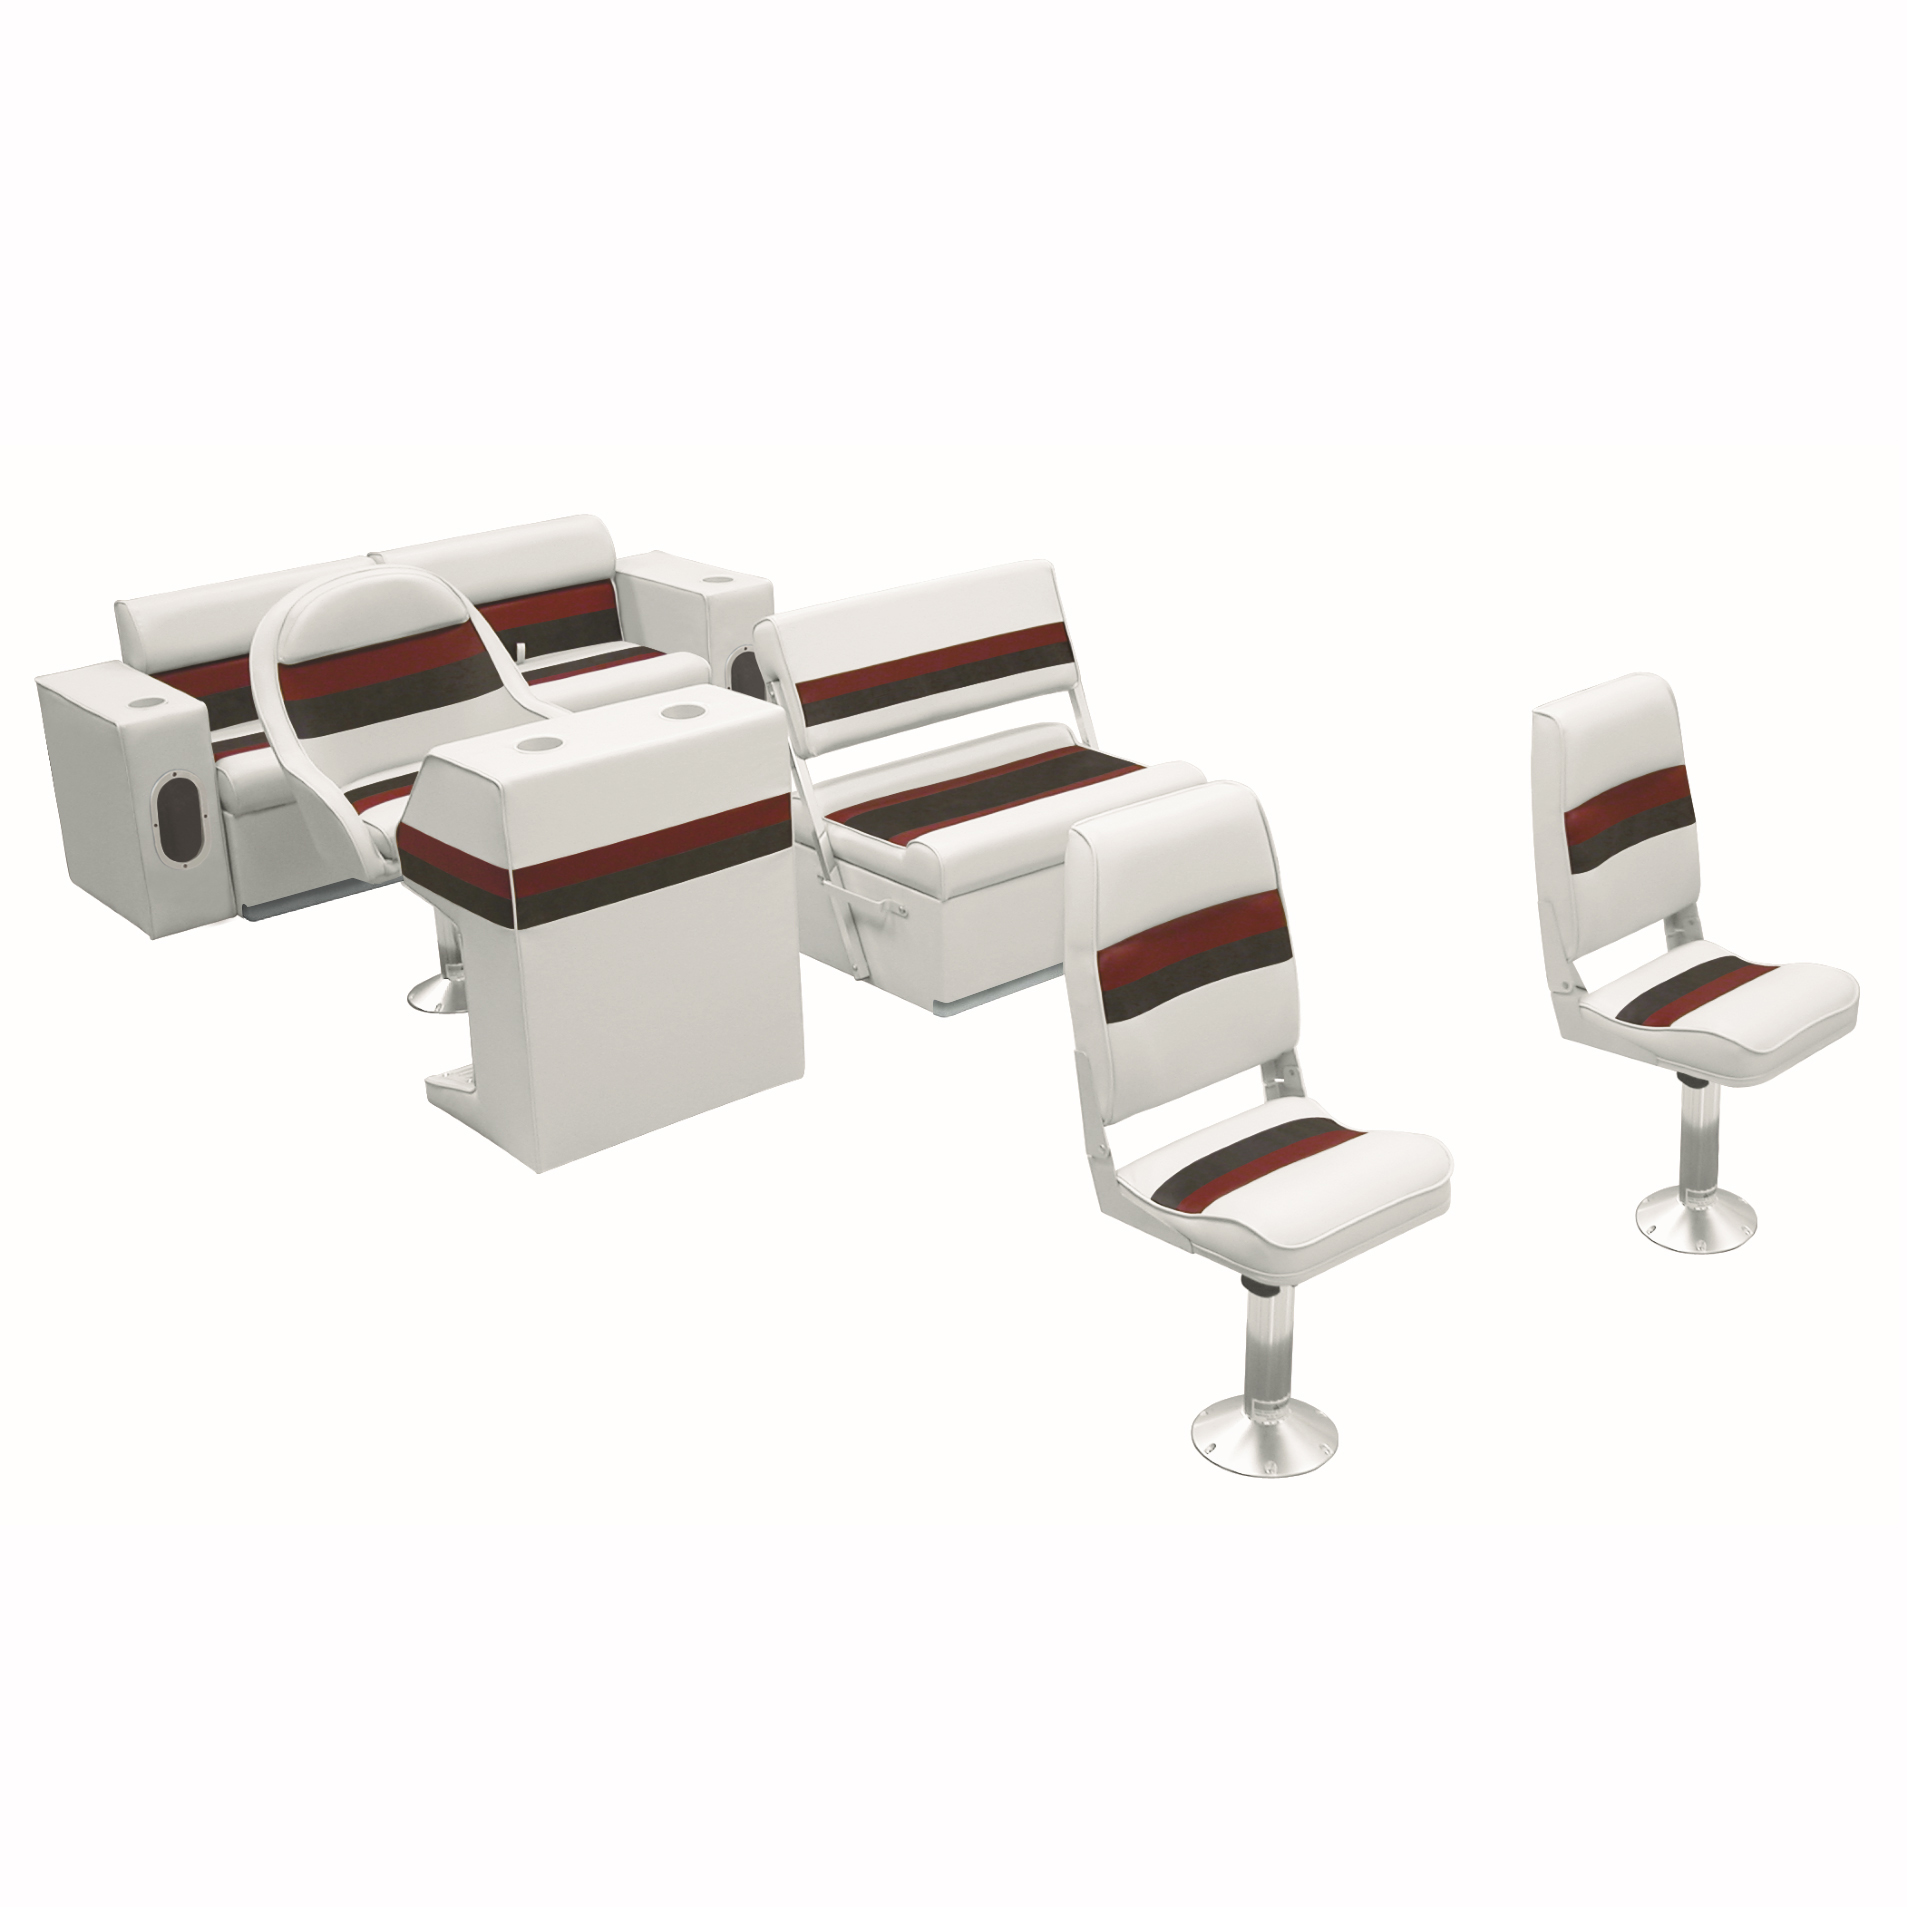 Deluxe Pontoon Furniture w/Toe Kick Base - Fishing Package, White/Red/Charcoal